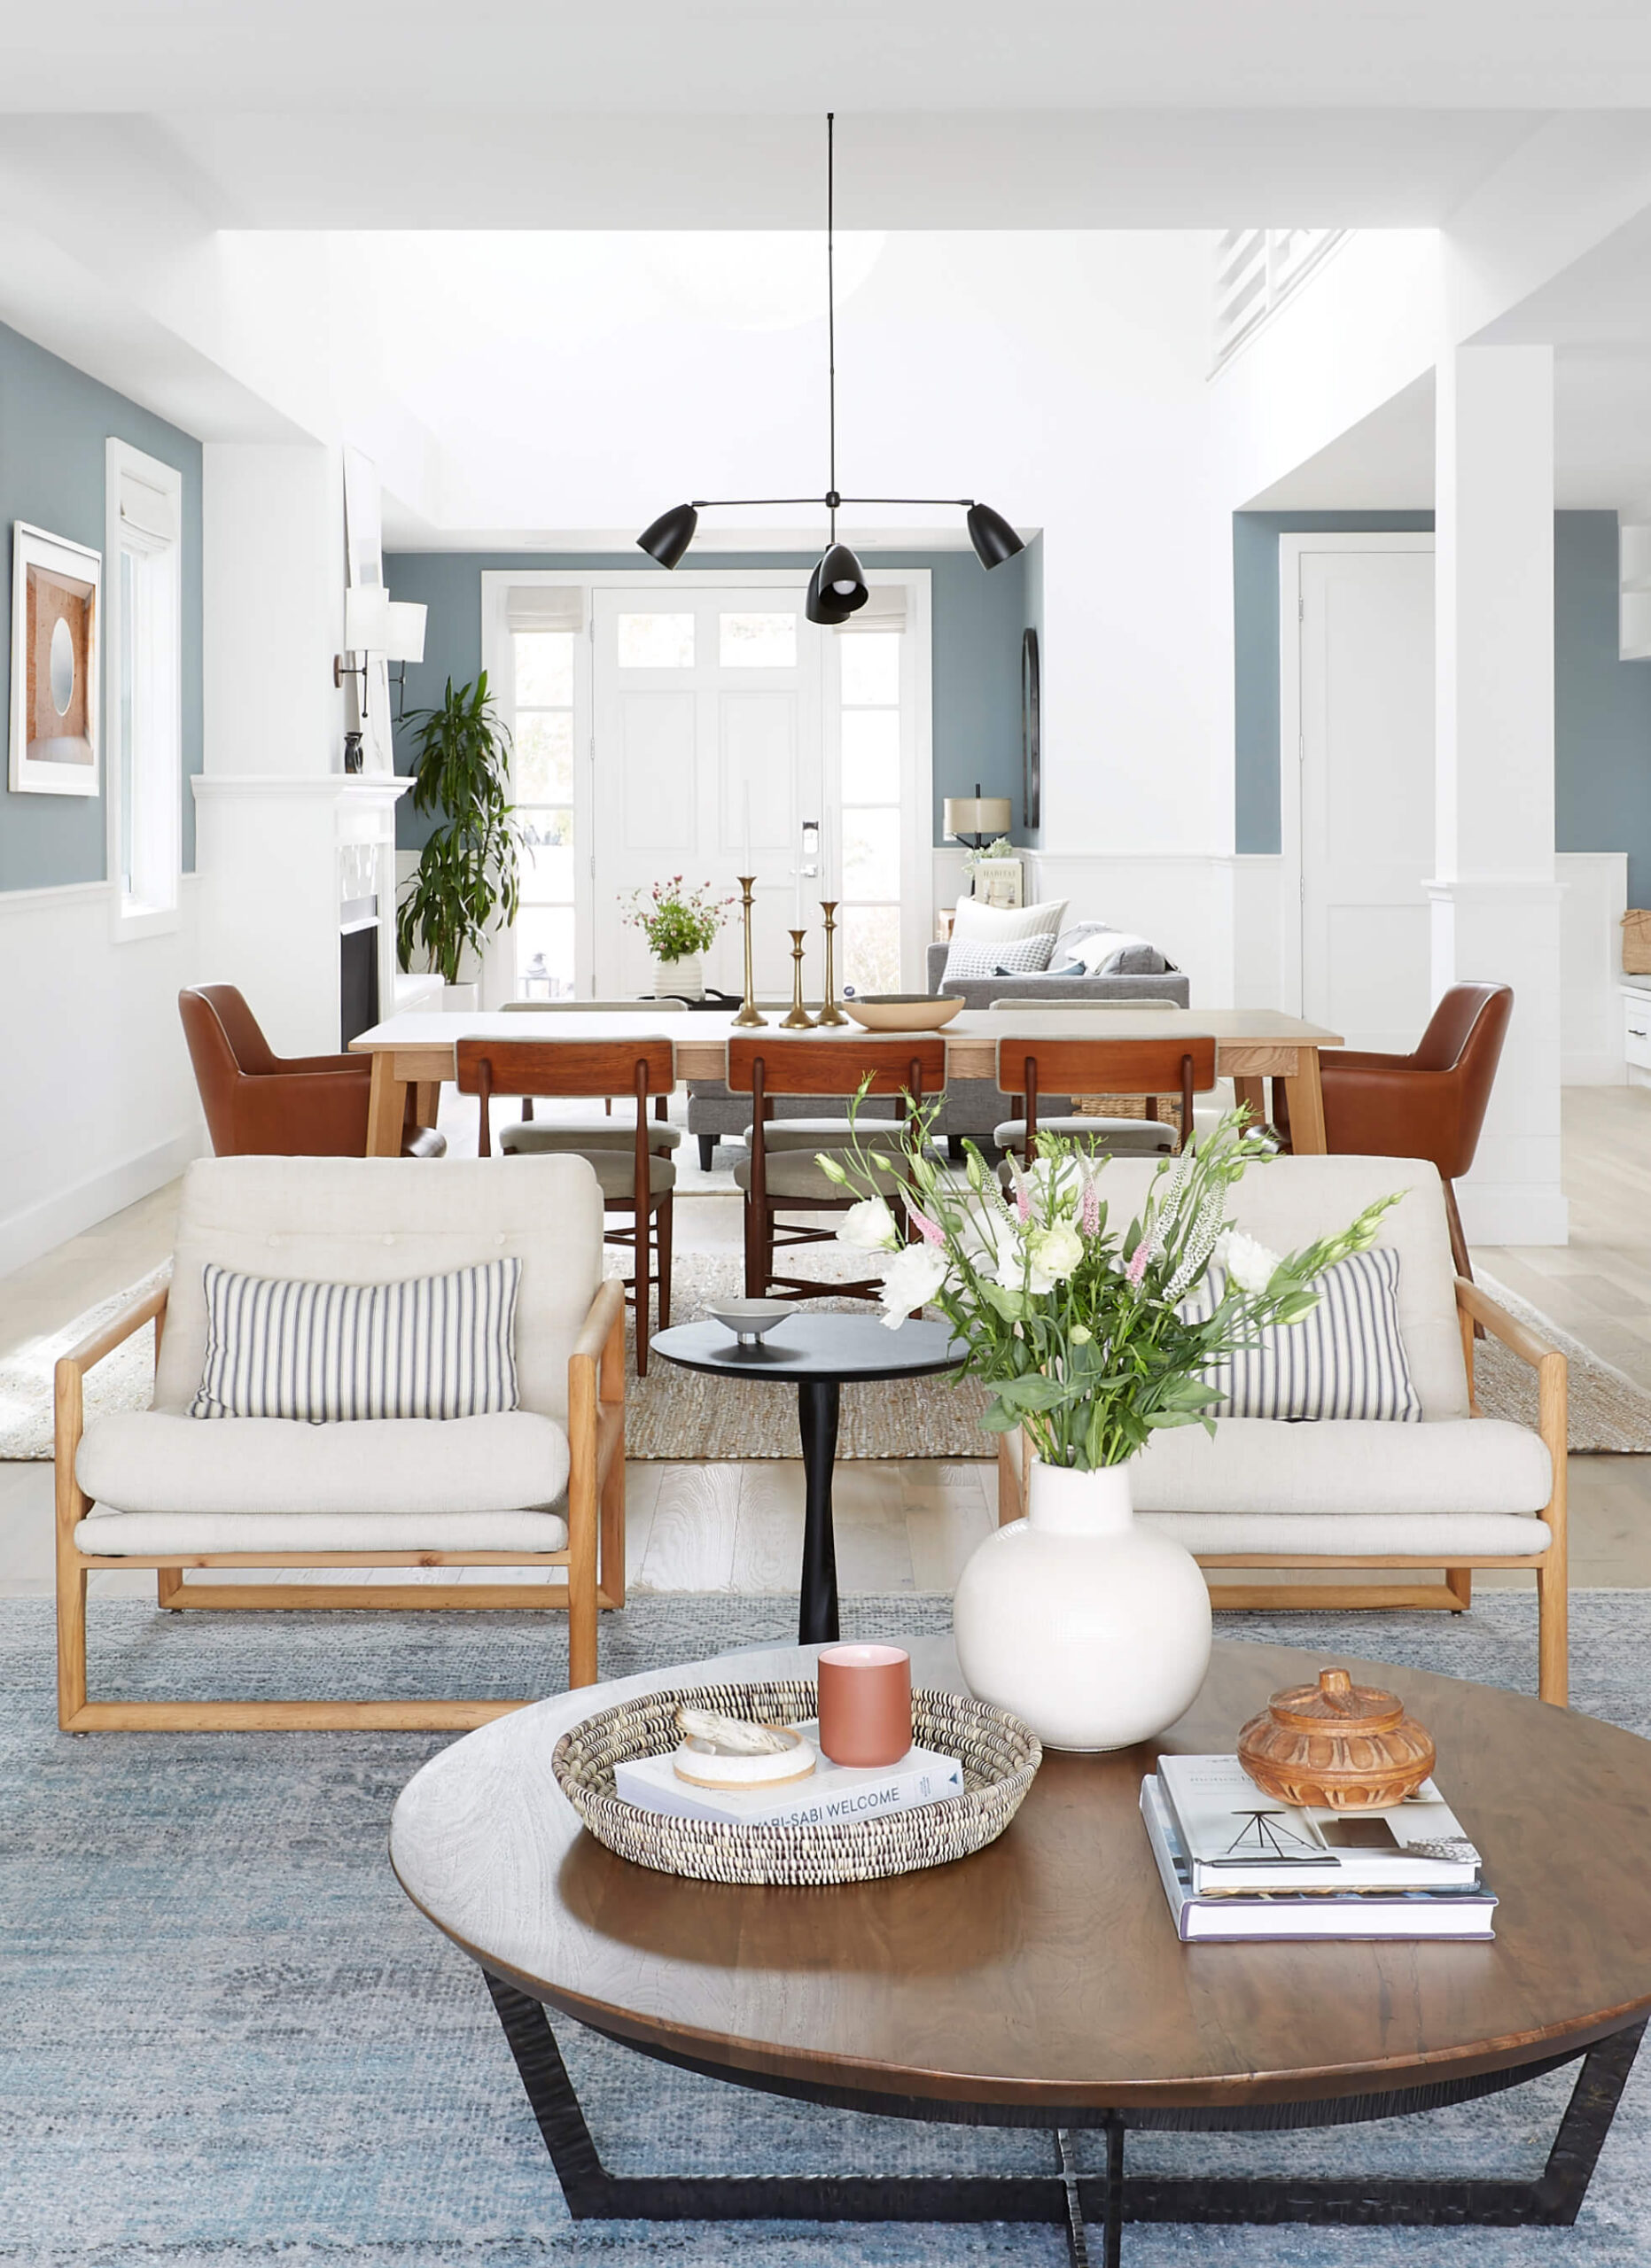 GINNY_MACDONALD_BEACH_HOUSE_LIVING_DINING_ROOM